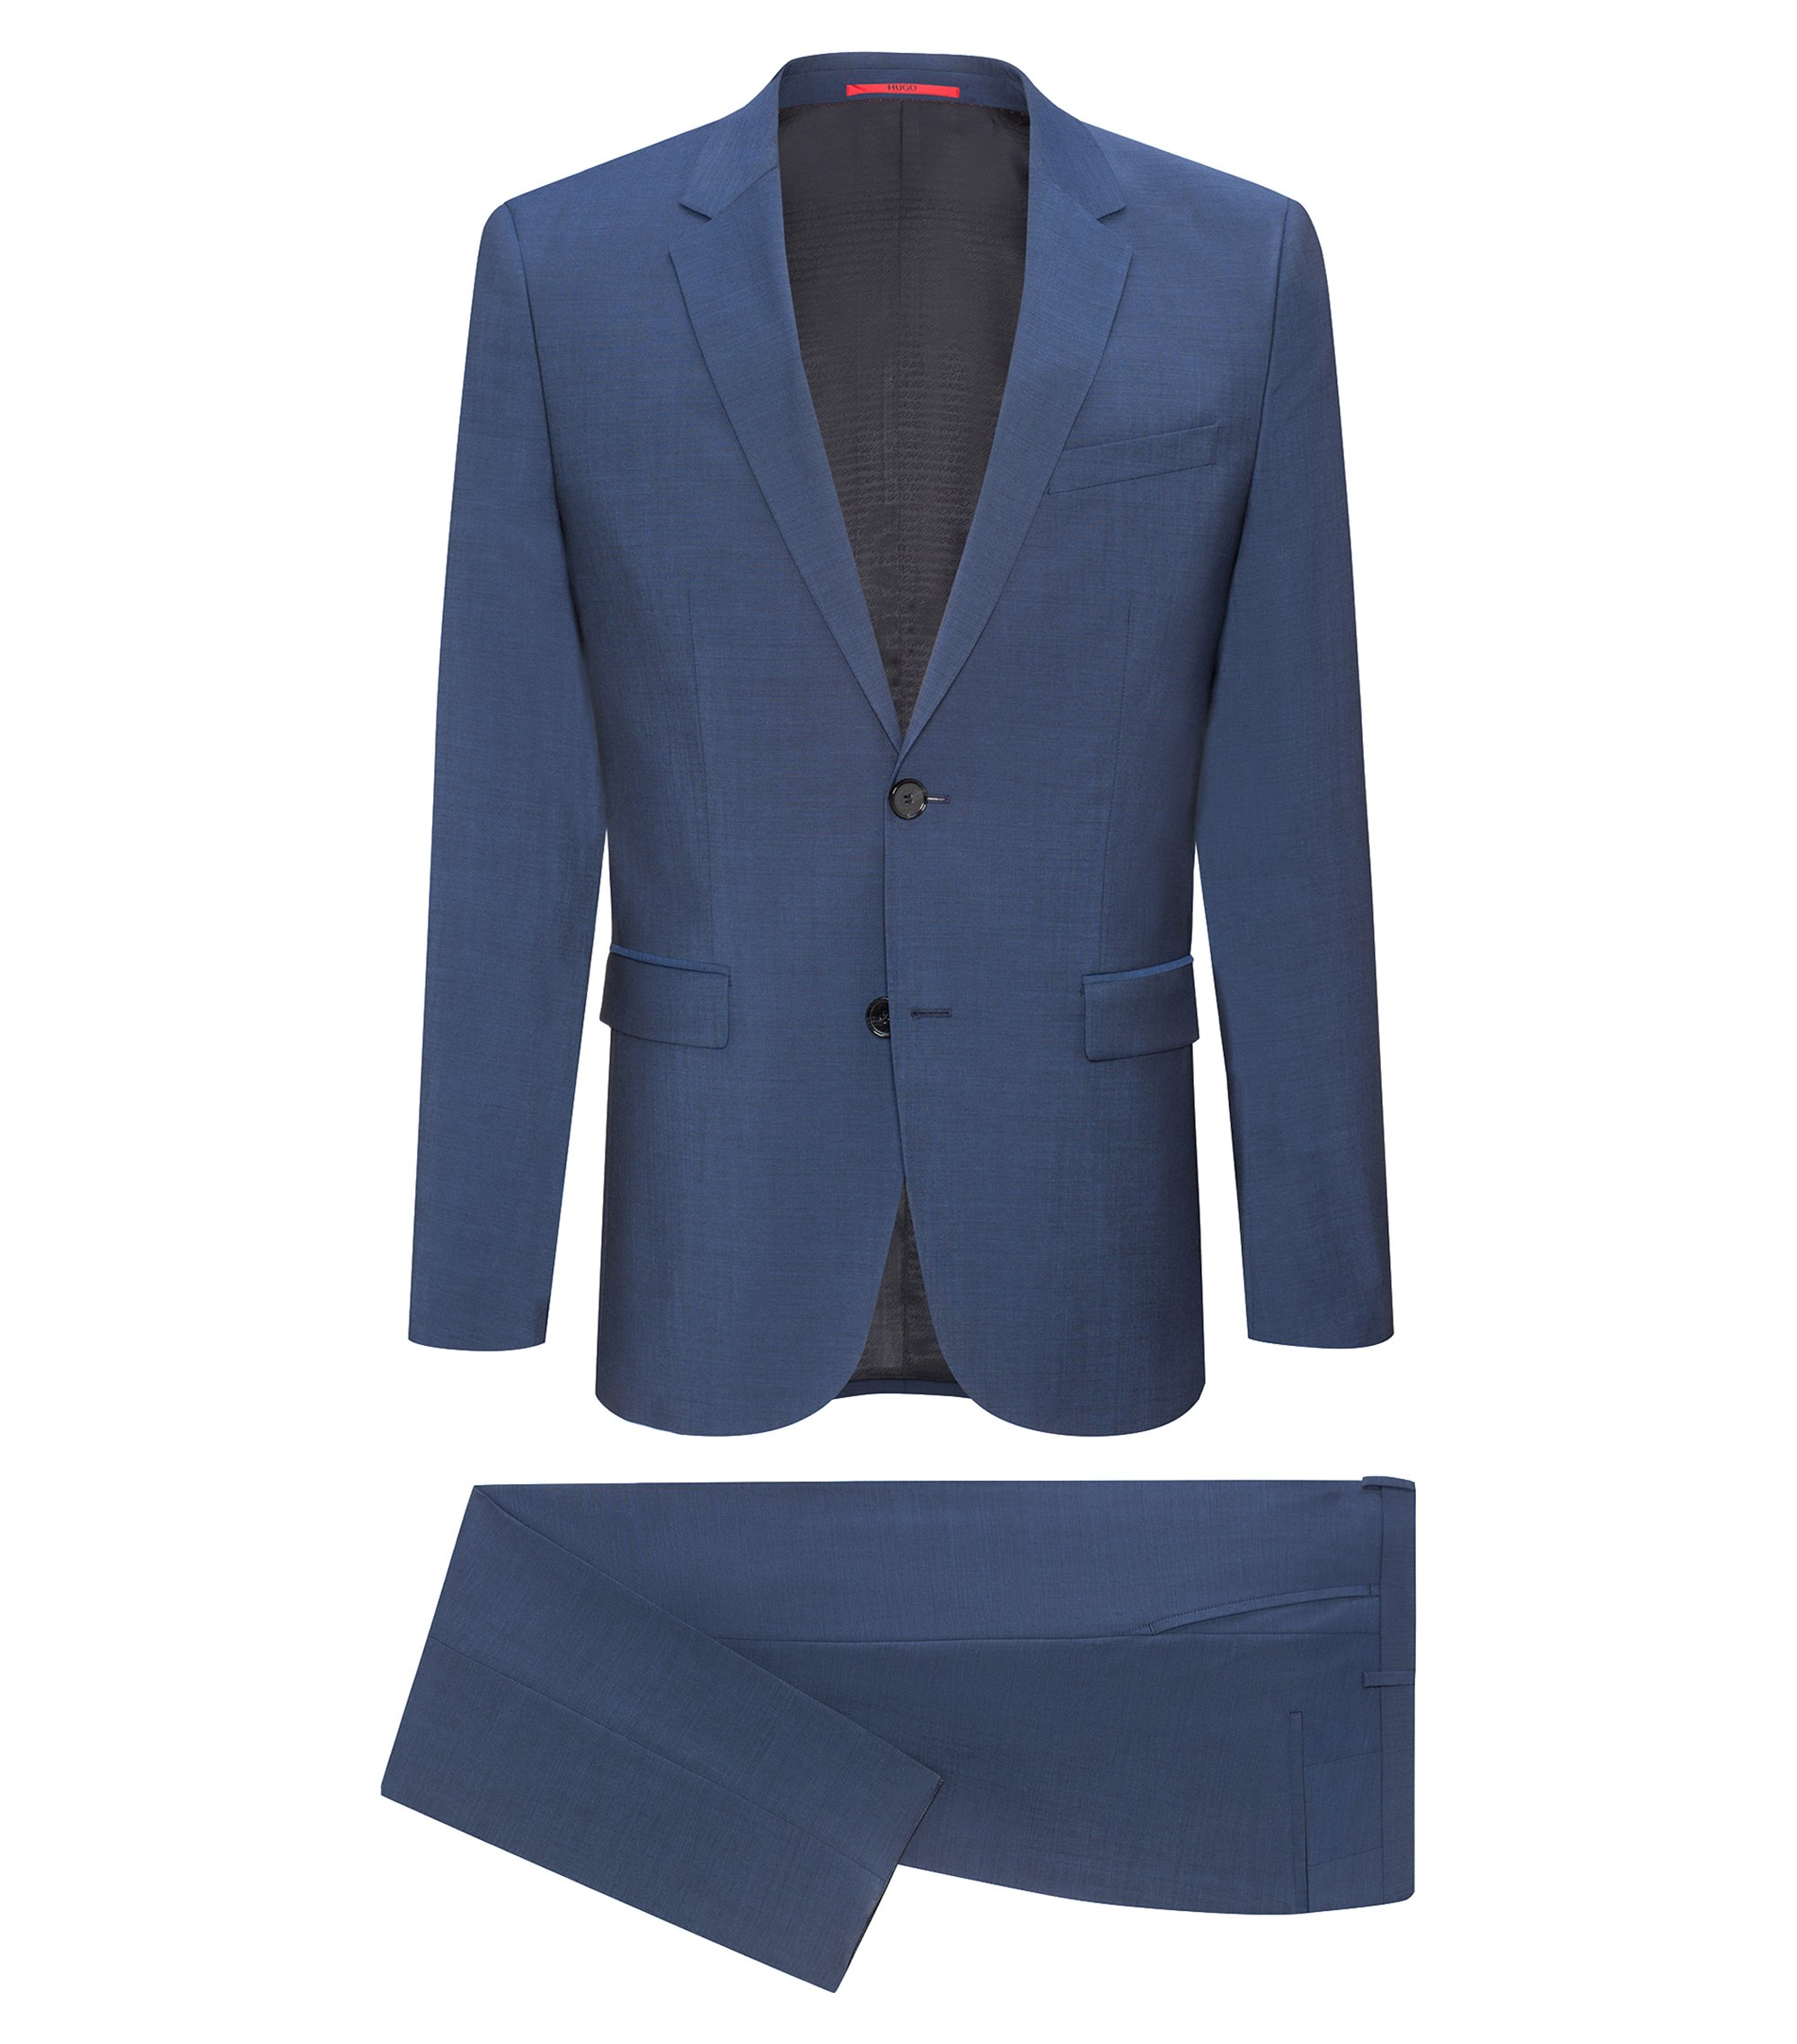 Italian Virgin Wool Suit, Extra Slim Fit | Astian/Hets, Blue